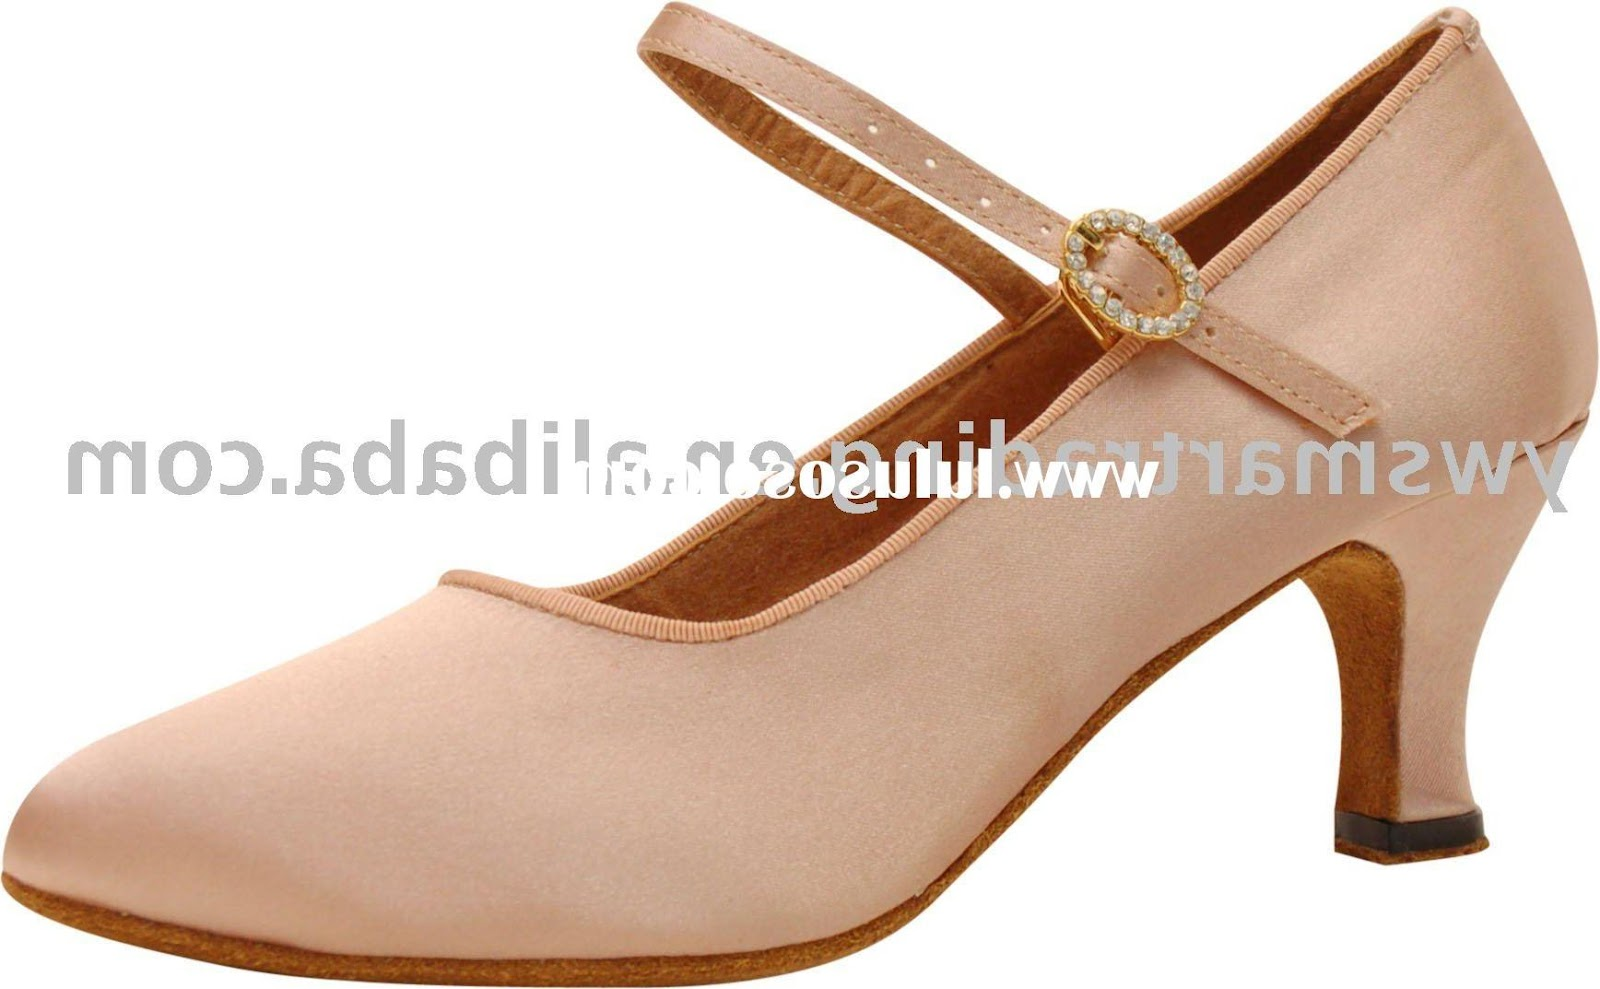 Discount Priced Wide Width Women S Shoes